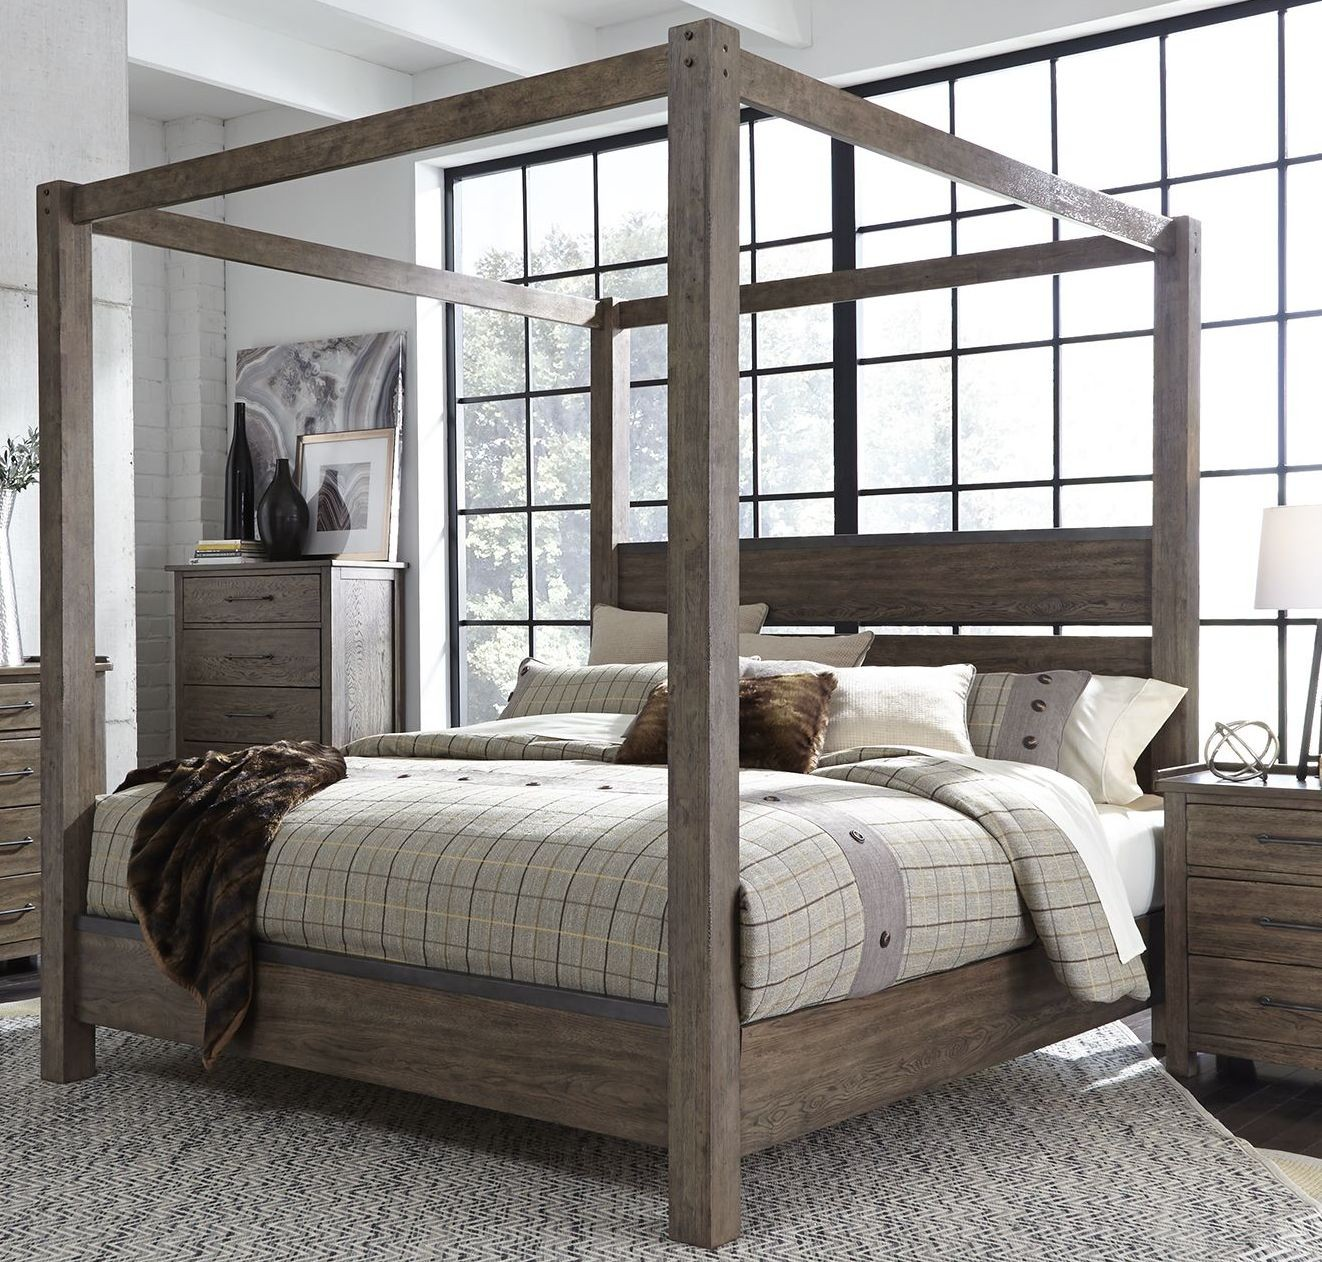 Sonoma road beaten bark canopy bedroom set 1stopbedrooms - Bedroom furniture sets buy now pay later ...